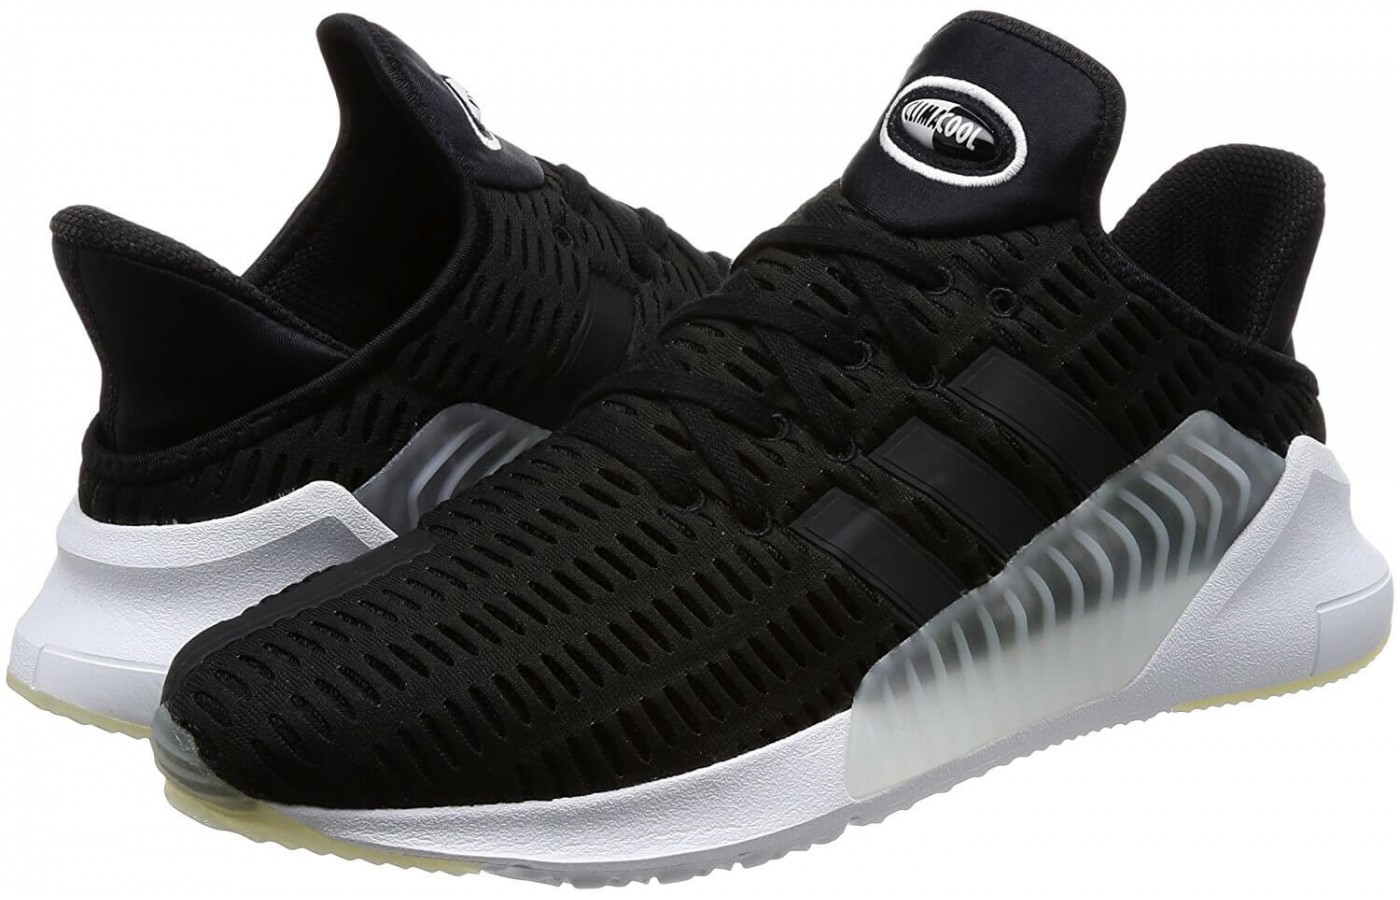 Adidas ClimaCool 02.17 knit upper provides adequate protection.